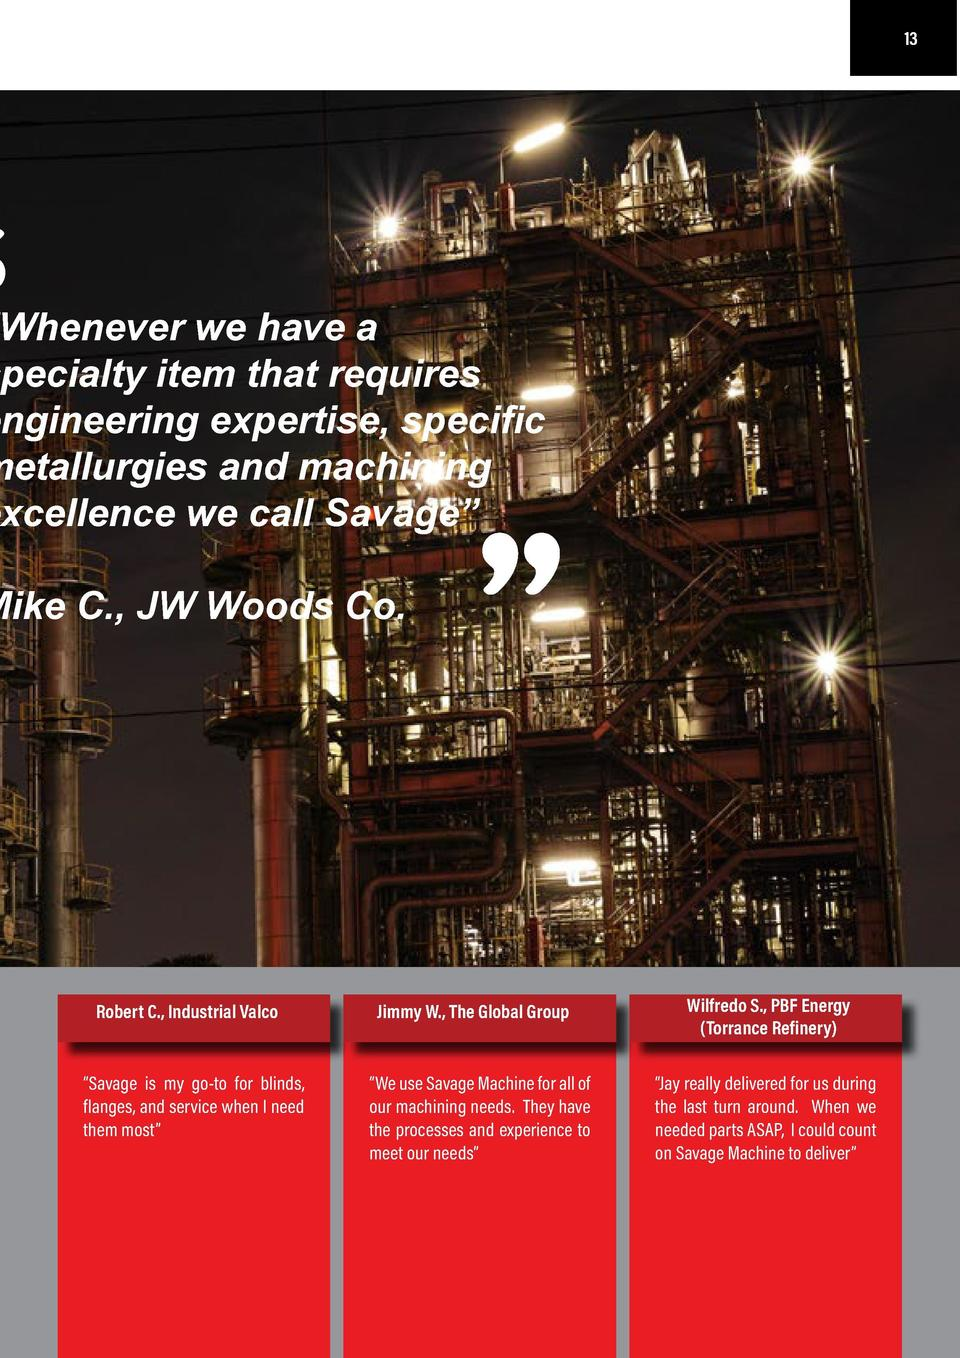 12  13  TESTIMONIALS          Whenever we have a specialty item that requires engineering expertise, specific metallurgies...